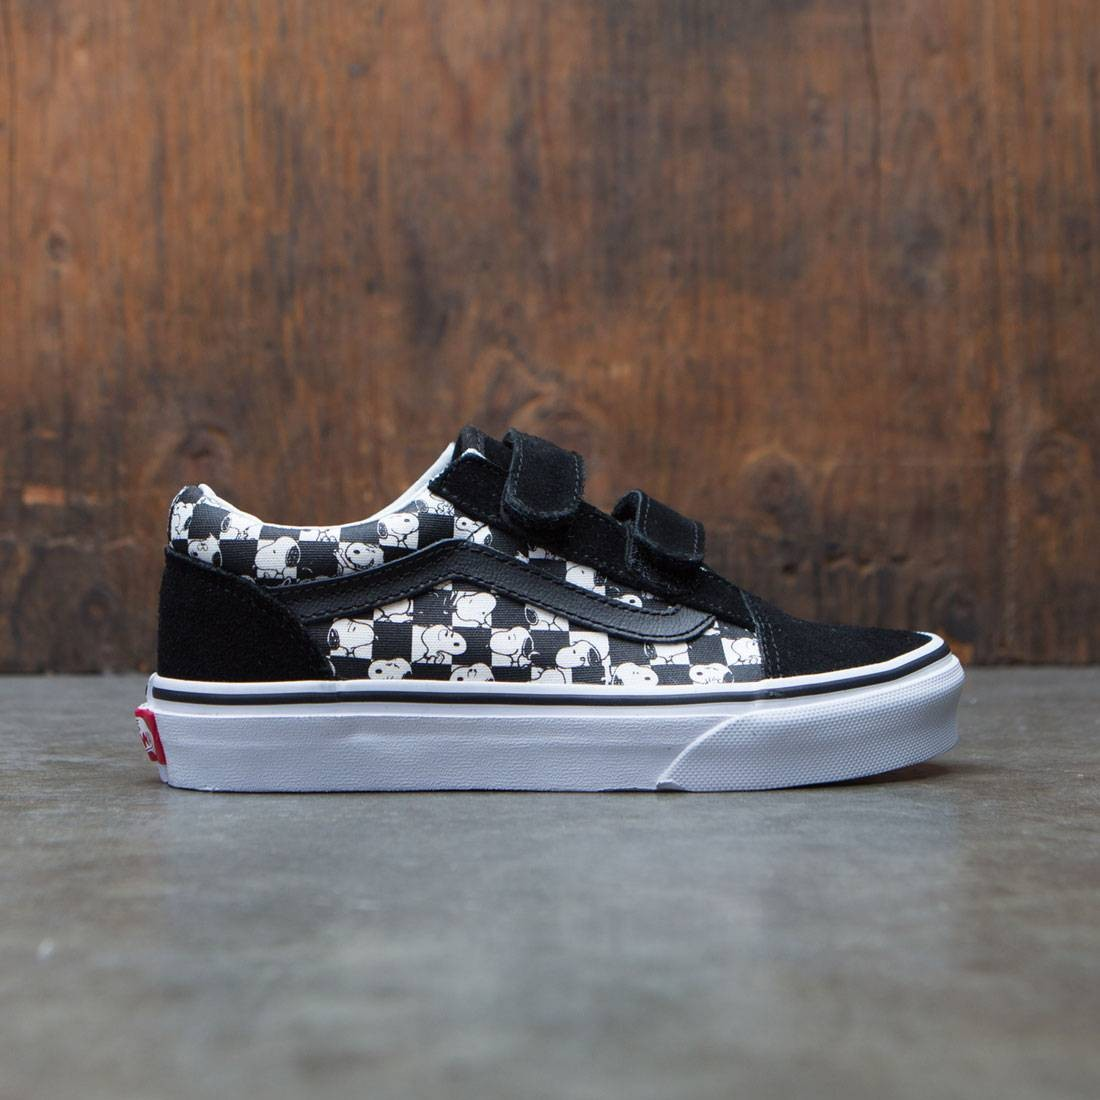 cdd8f14375e Vans x Peanuts Big Kids Old Skool V - Snoopy black checkerboard